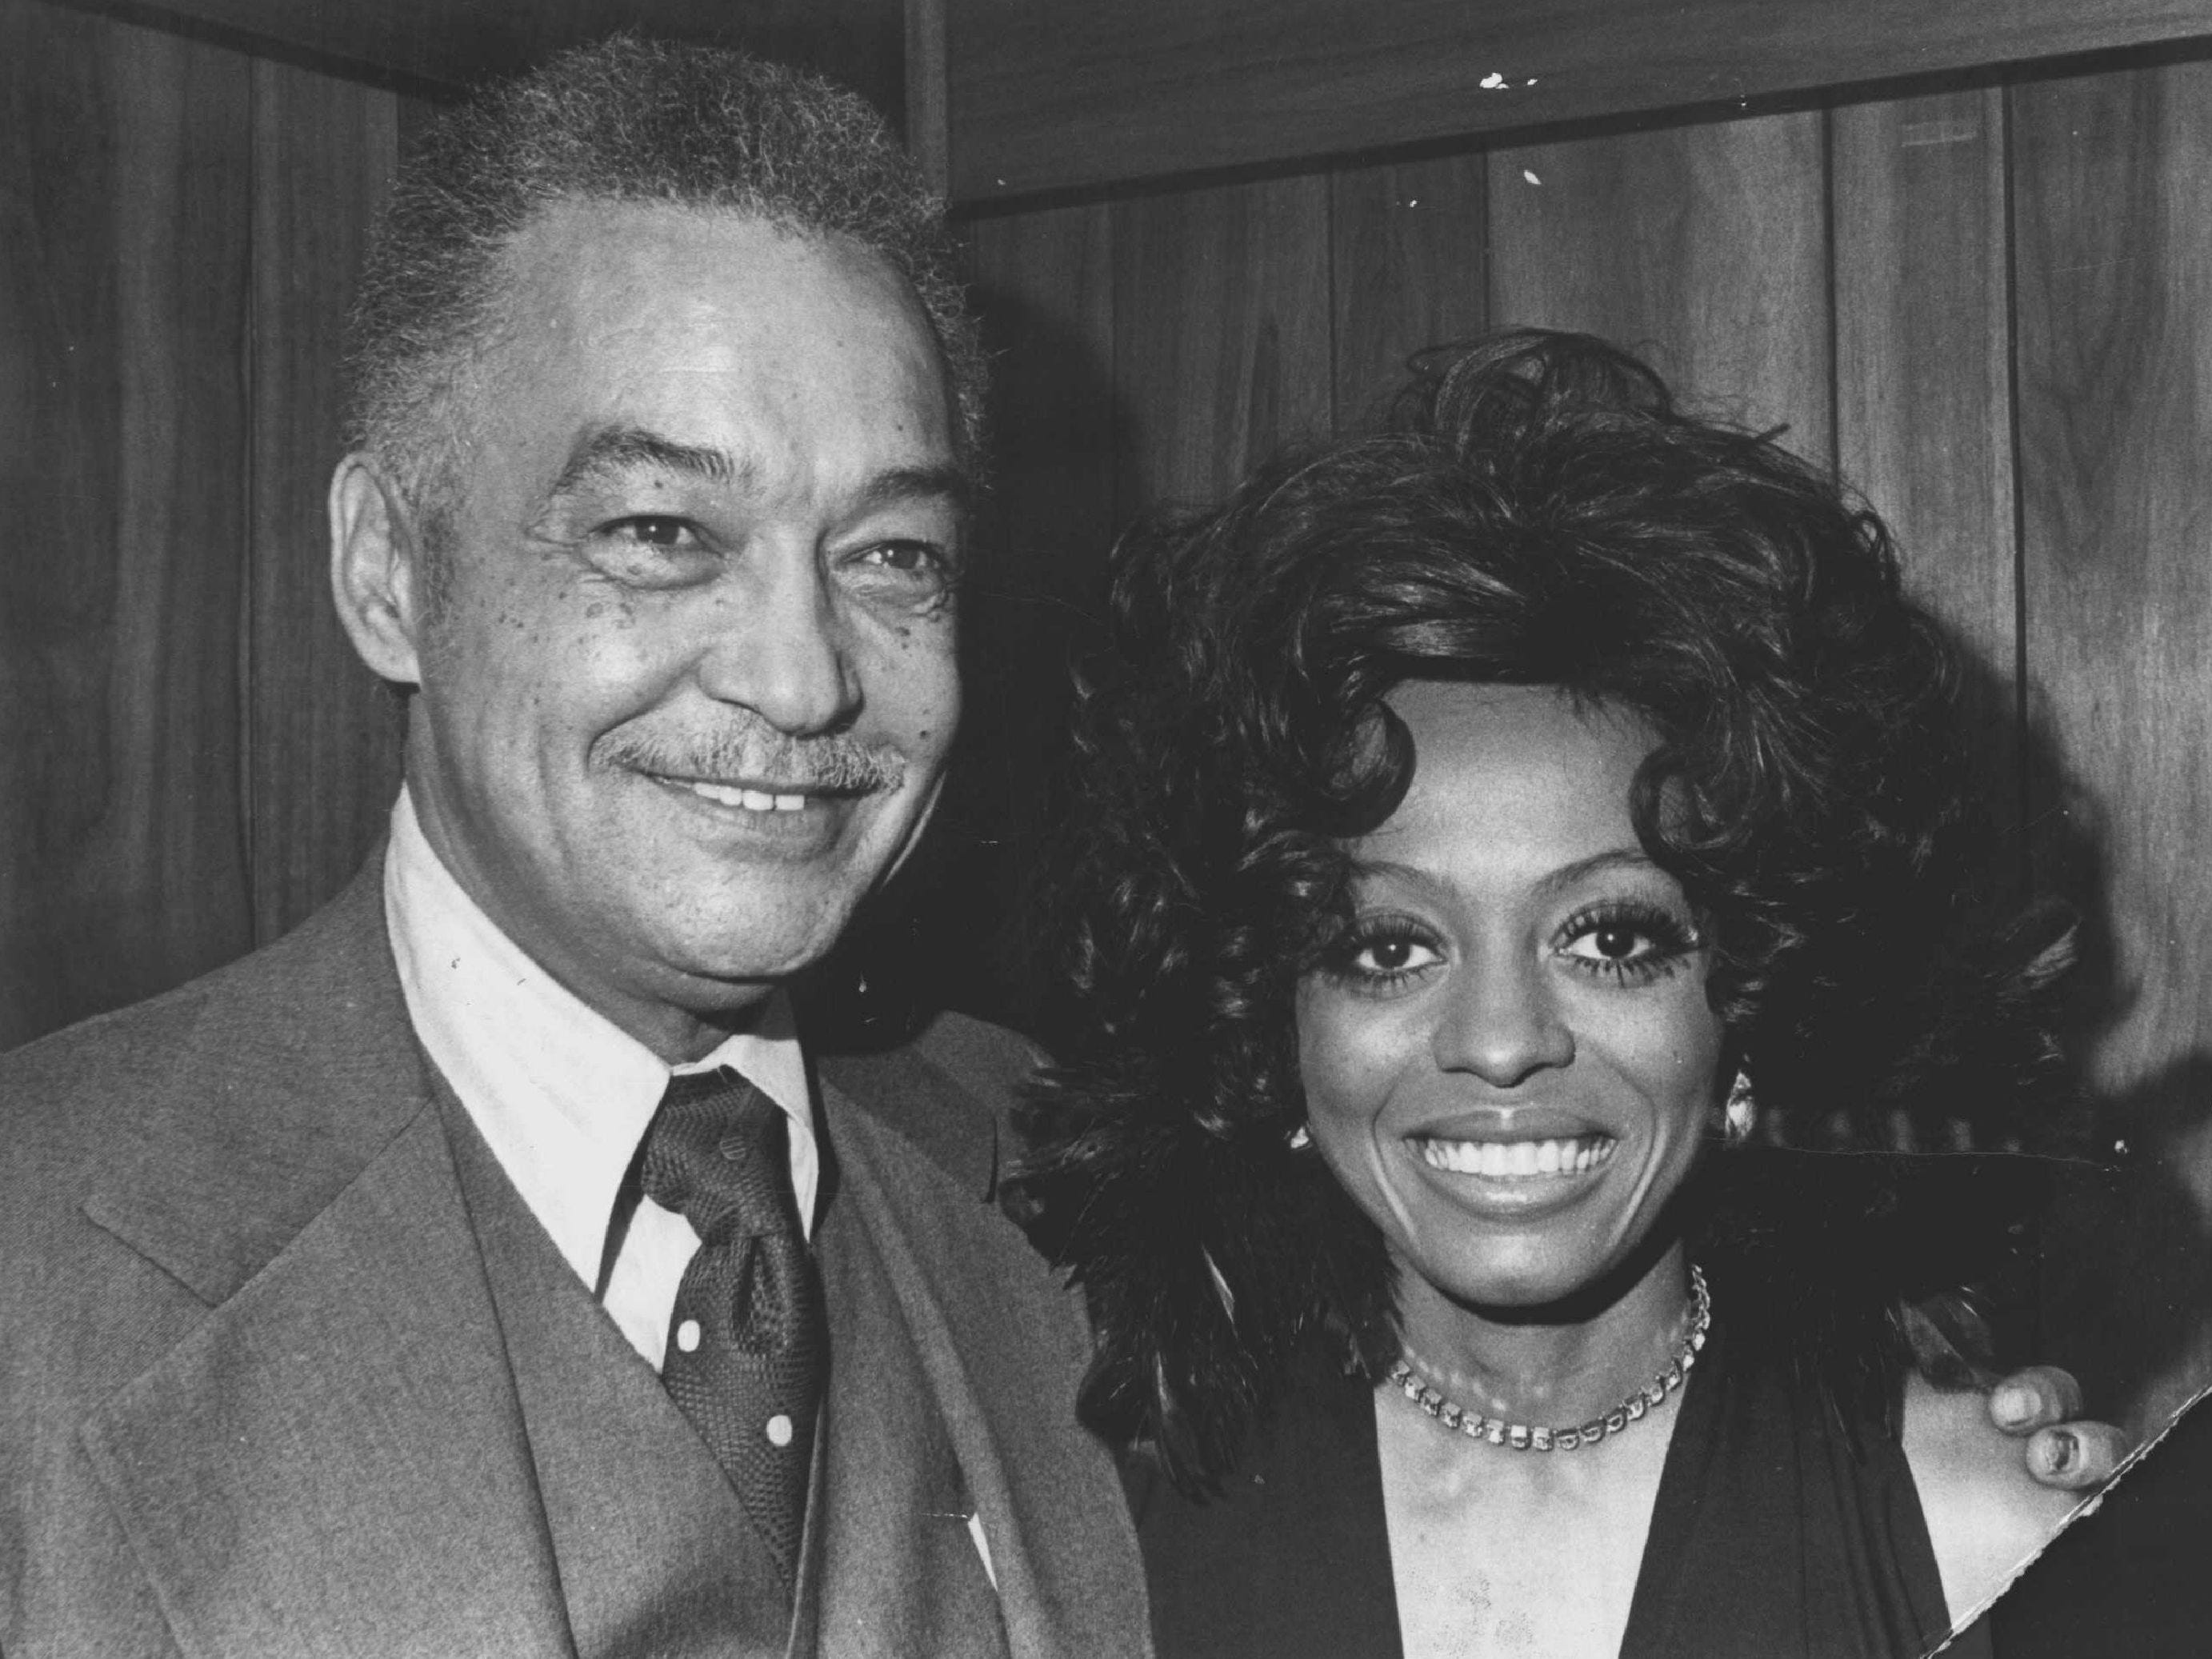 Detroit Mayor Coleman Young had his photo taken with Diana Ross when she was in town for a performance at the Masonic Temple auditorium in 1974.